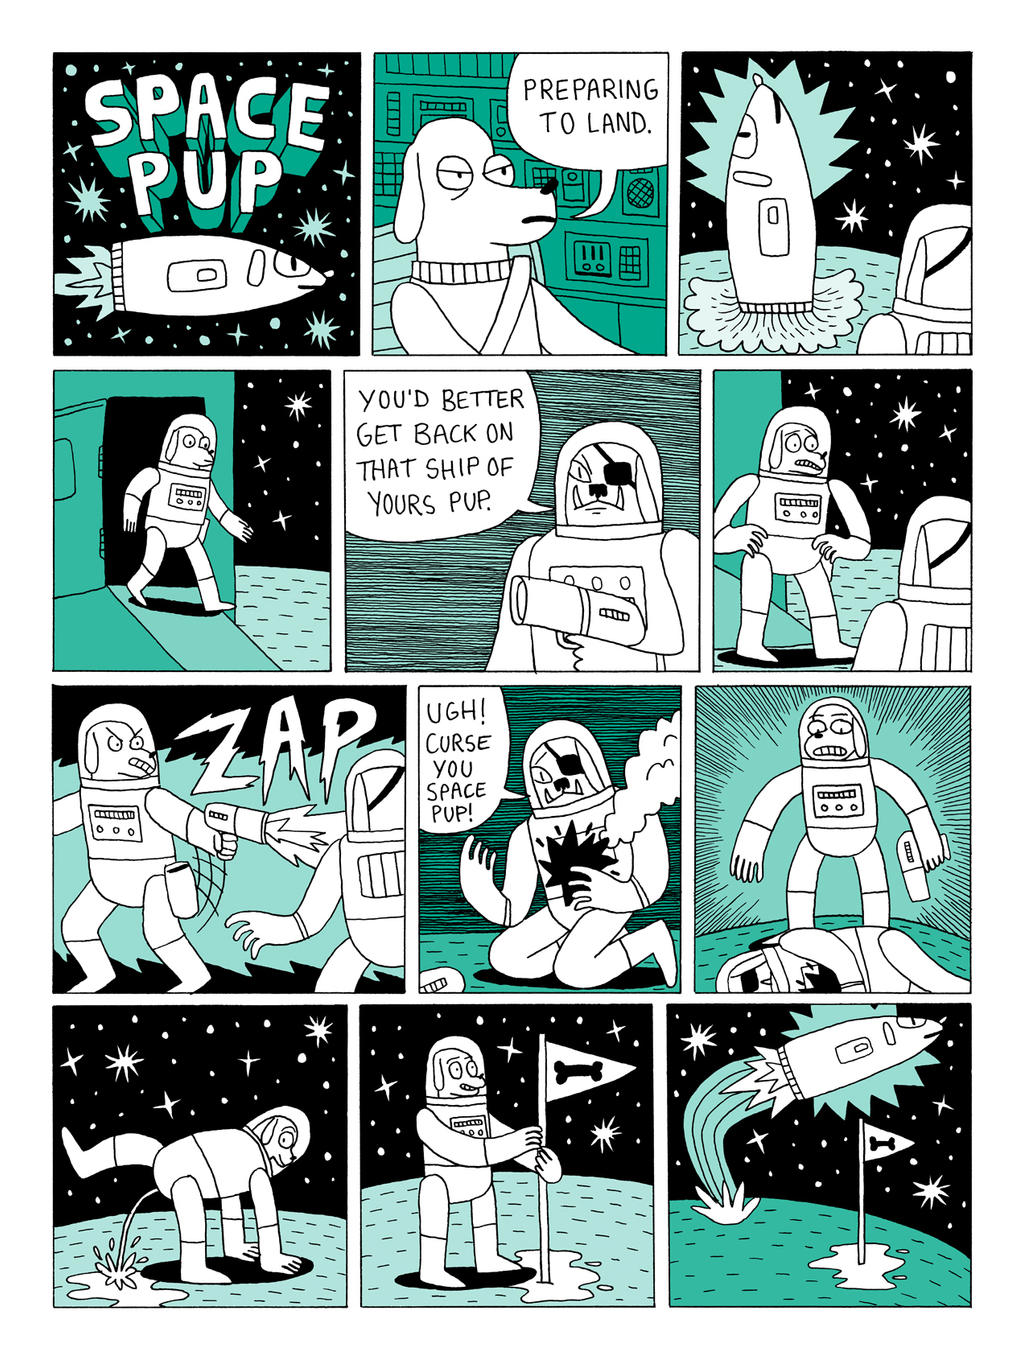 Space Pup - Dog Comics 2 by Teagle